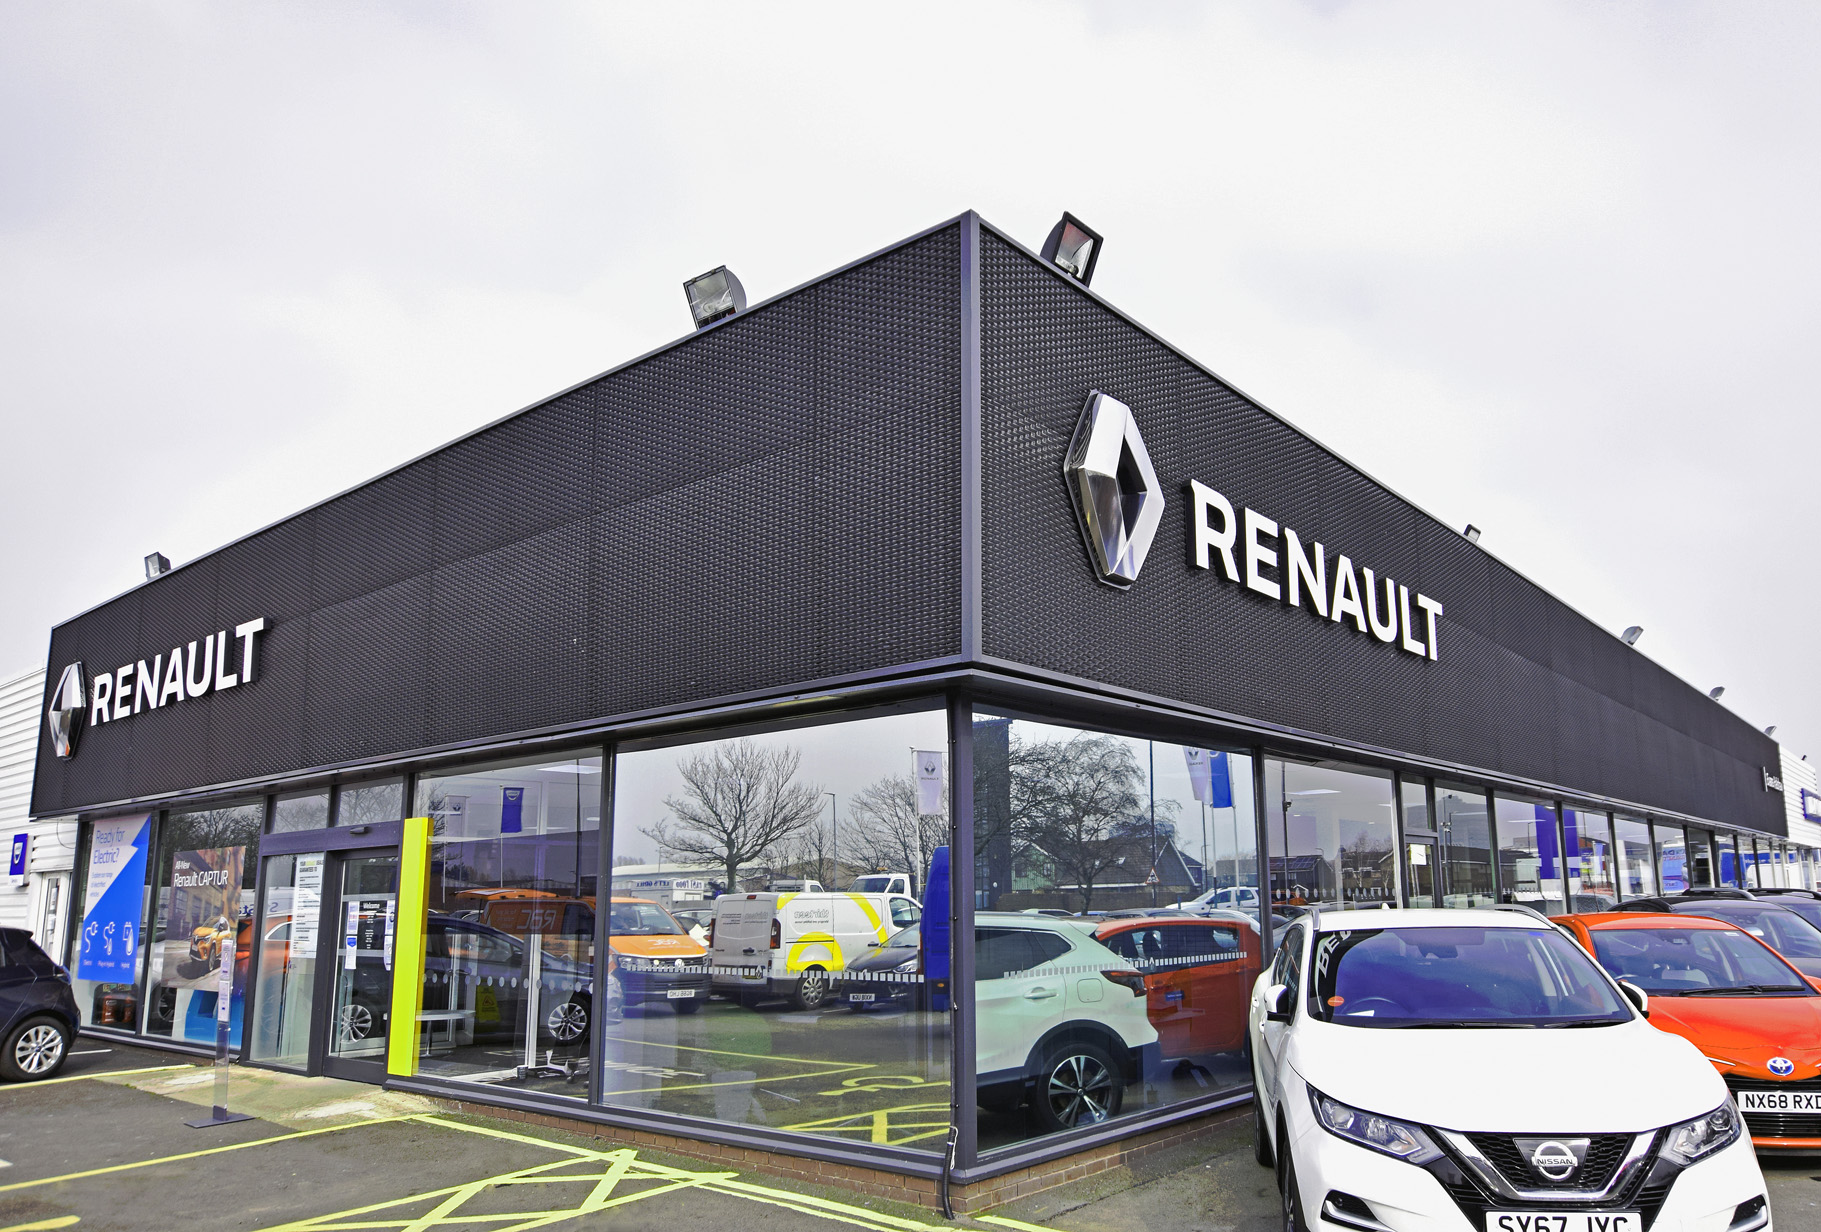 Outside the front of the Renault Middlesbrough dealership